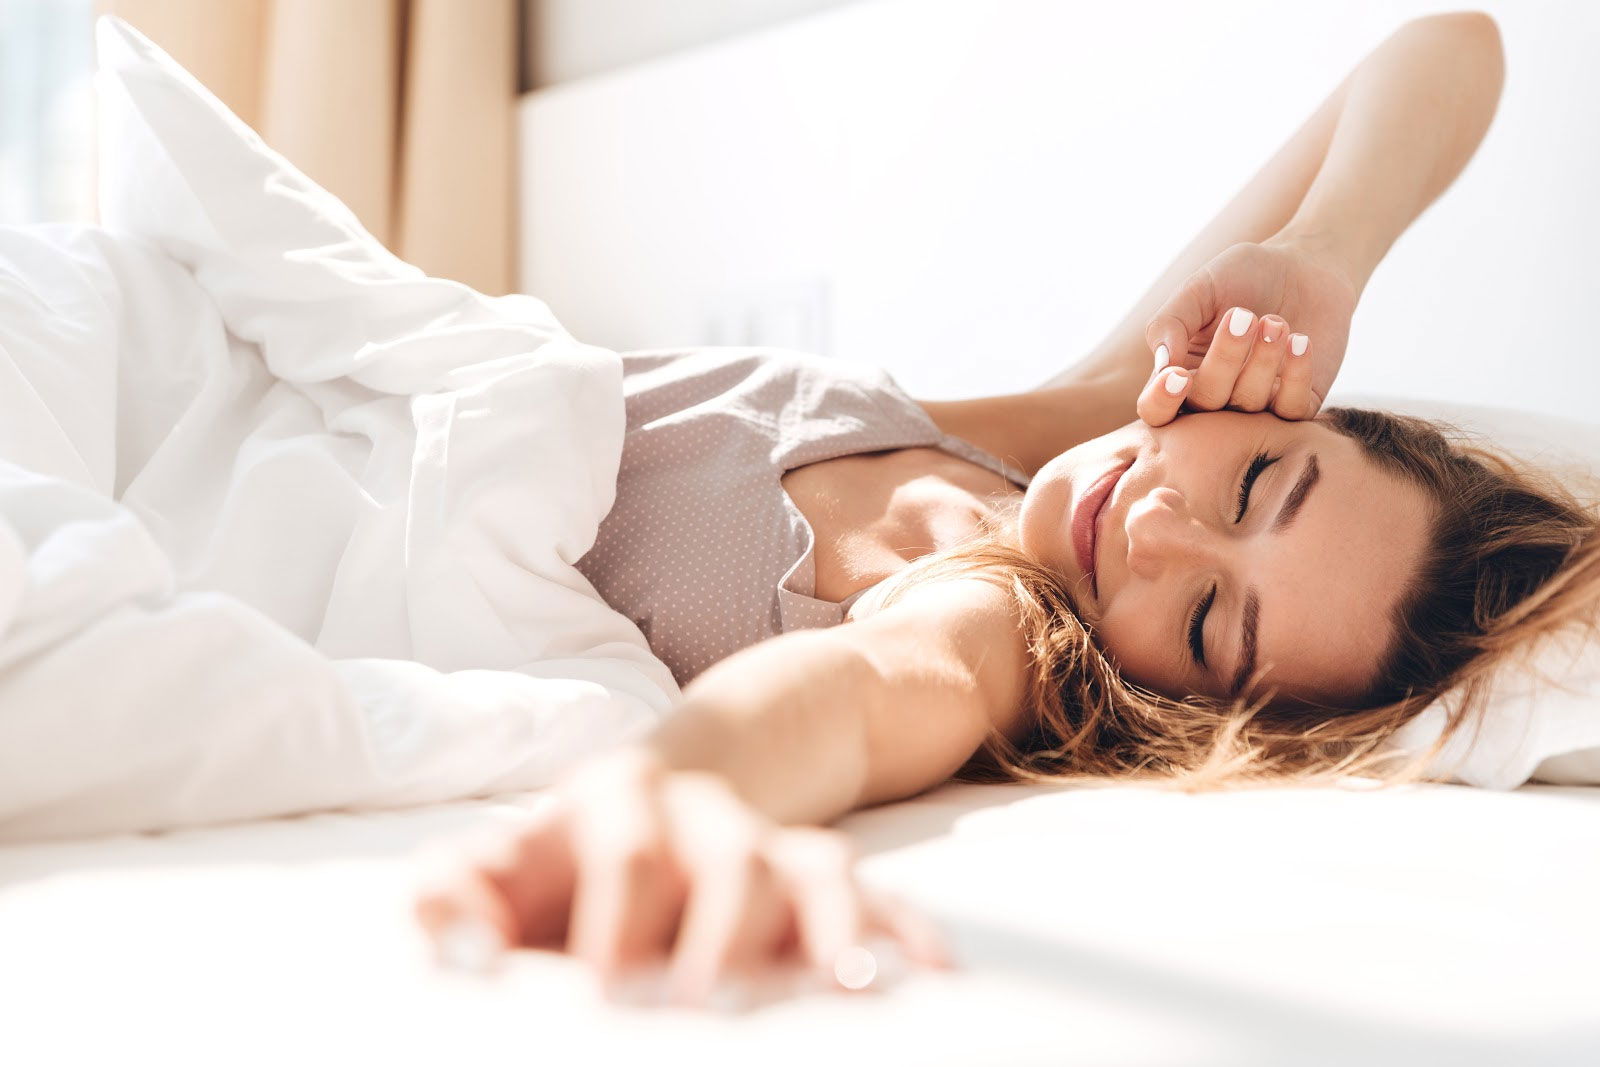 Woman happily waking up after a good night's sleep